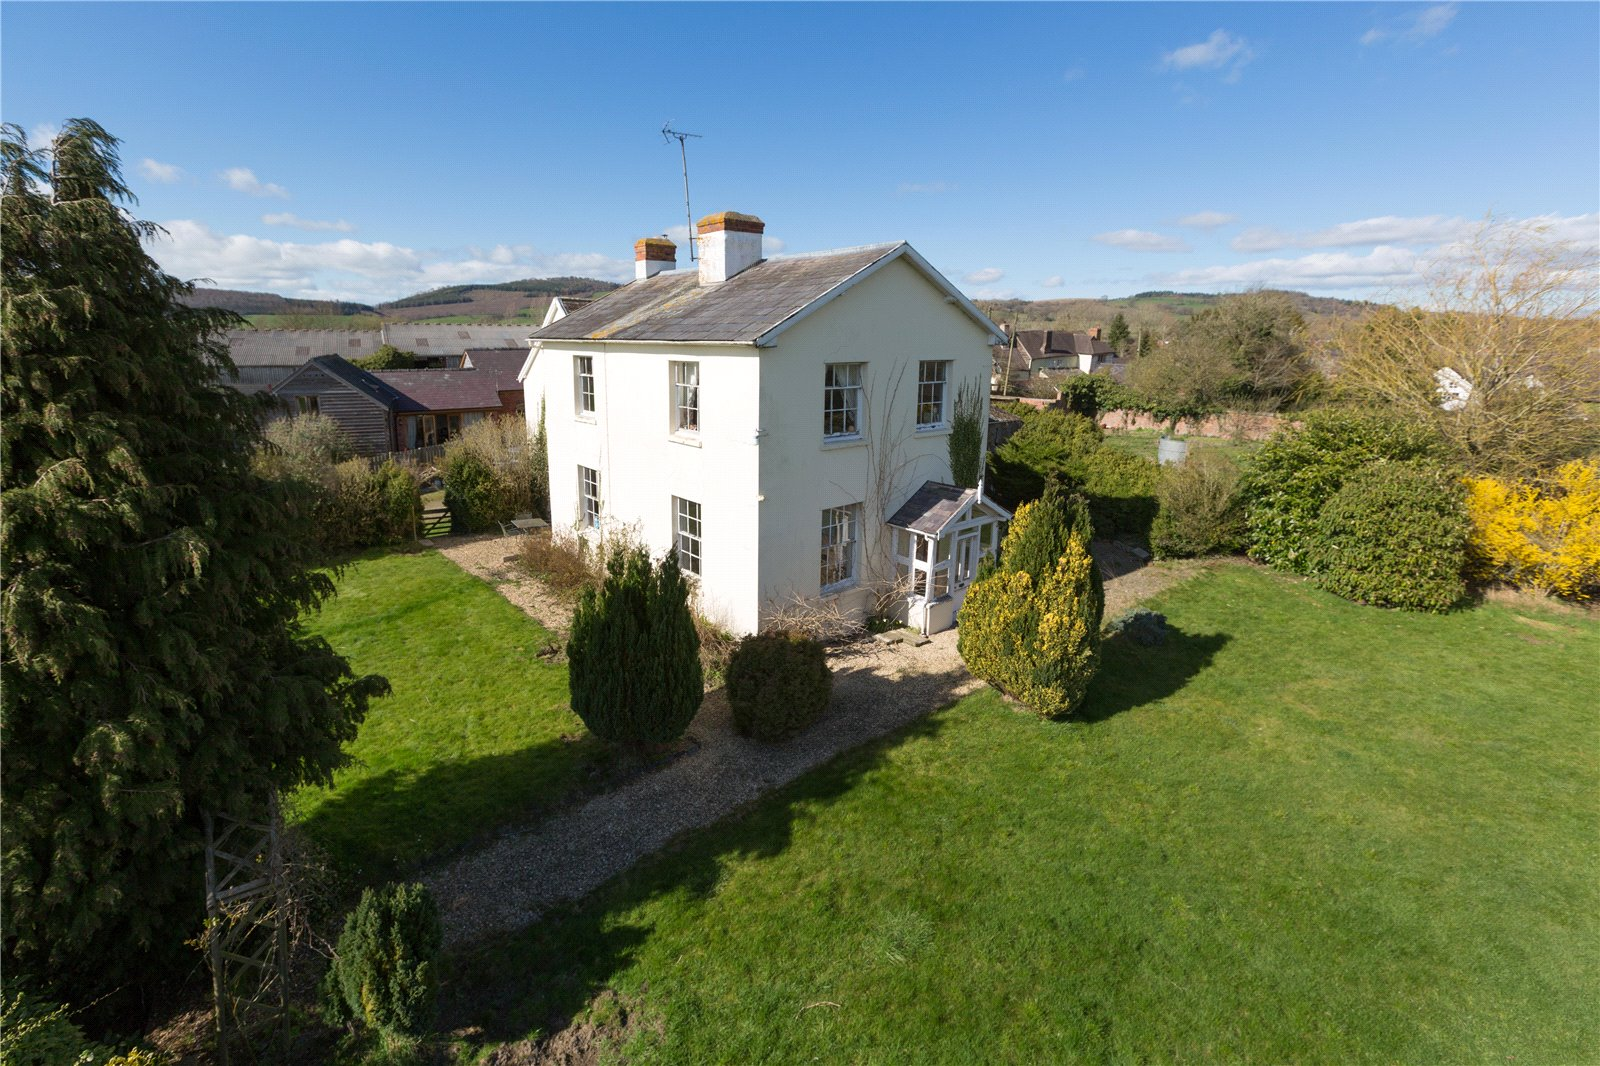 Broome Farm House, Aston-on-Clun, Craven Arms, Shropshire, SY7